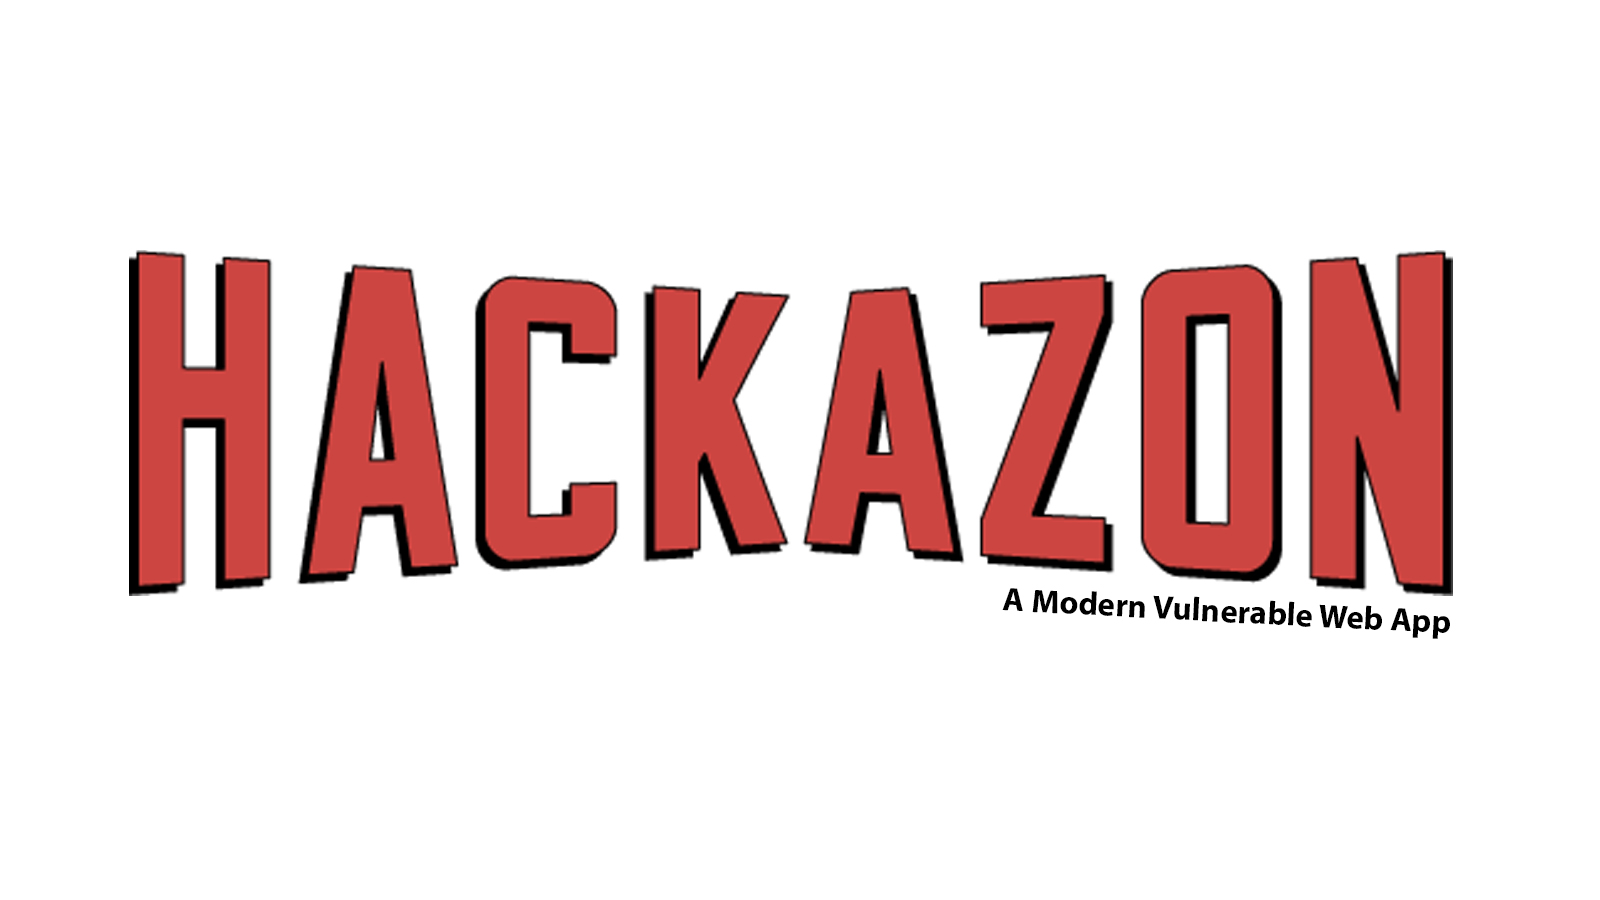 Hackazon - A Modern Vulnerable Web App